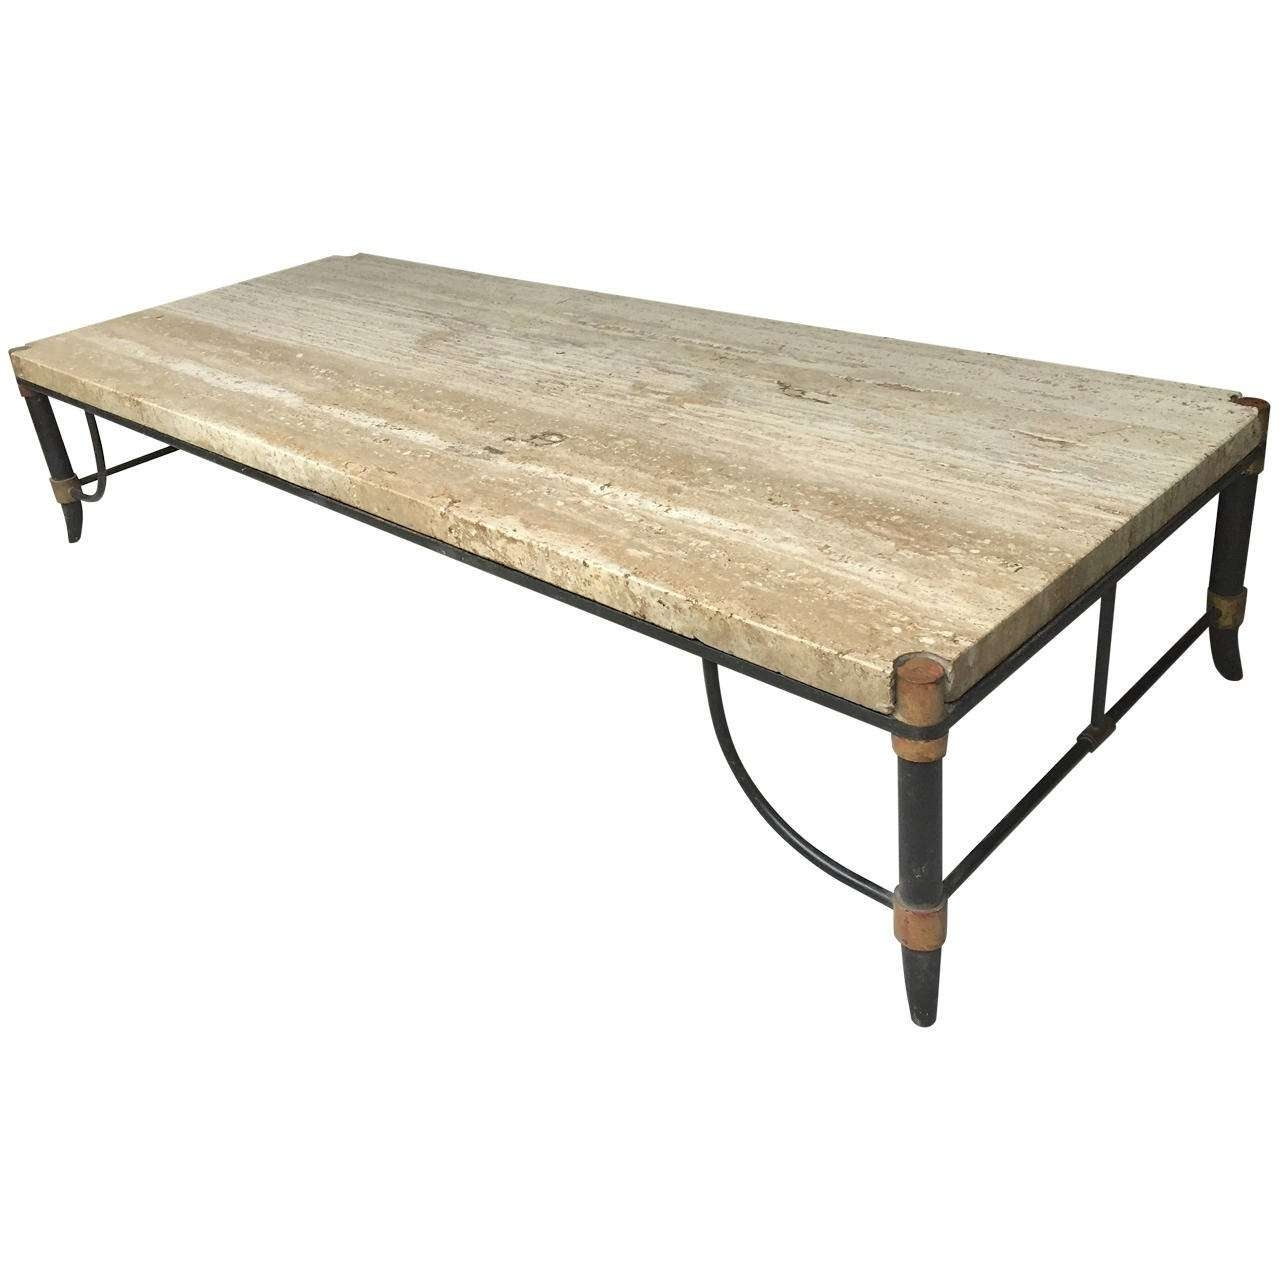 Most Current Bronze Coffee Tables Within Italian Travertine, Bronze And Enamel Coffee Table For Sale At 1stdibs (View 8 of 20)